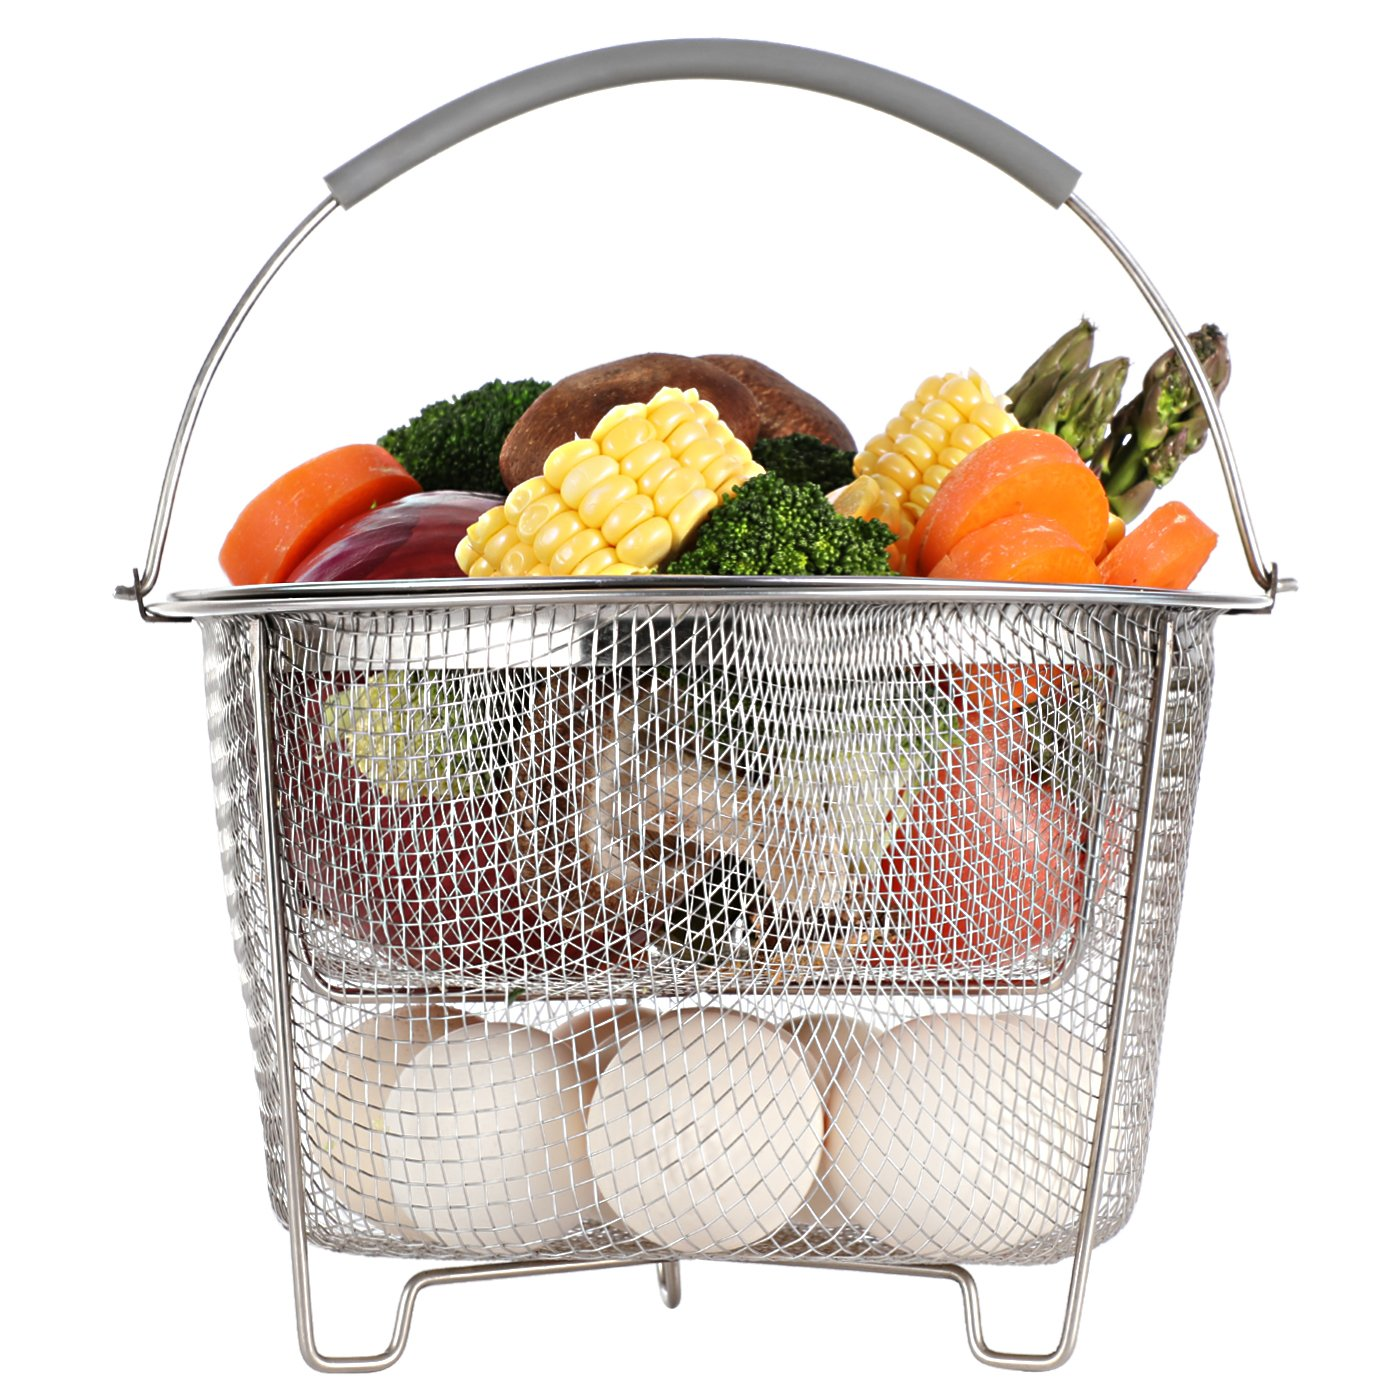 Aoizta Double Tier Stackable Steamer Basket for Instant Pot Accessories 6/8 qt, 18/8 Stainless Steel Mesh Strainer Basket for Vegetables, Eggs, Meats, etc by Aozita (Image #5)